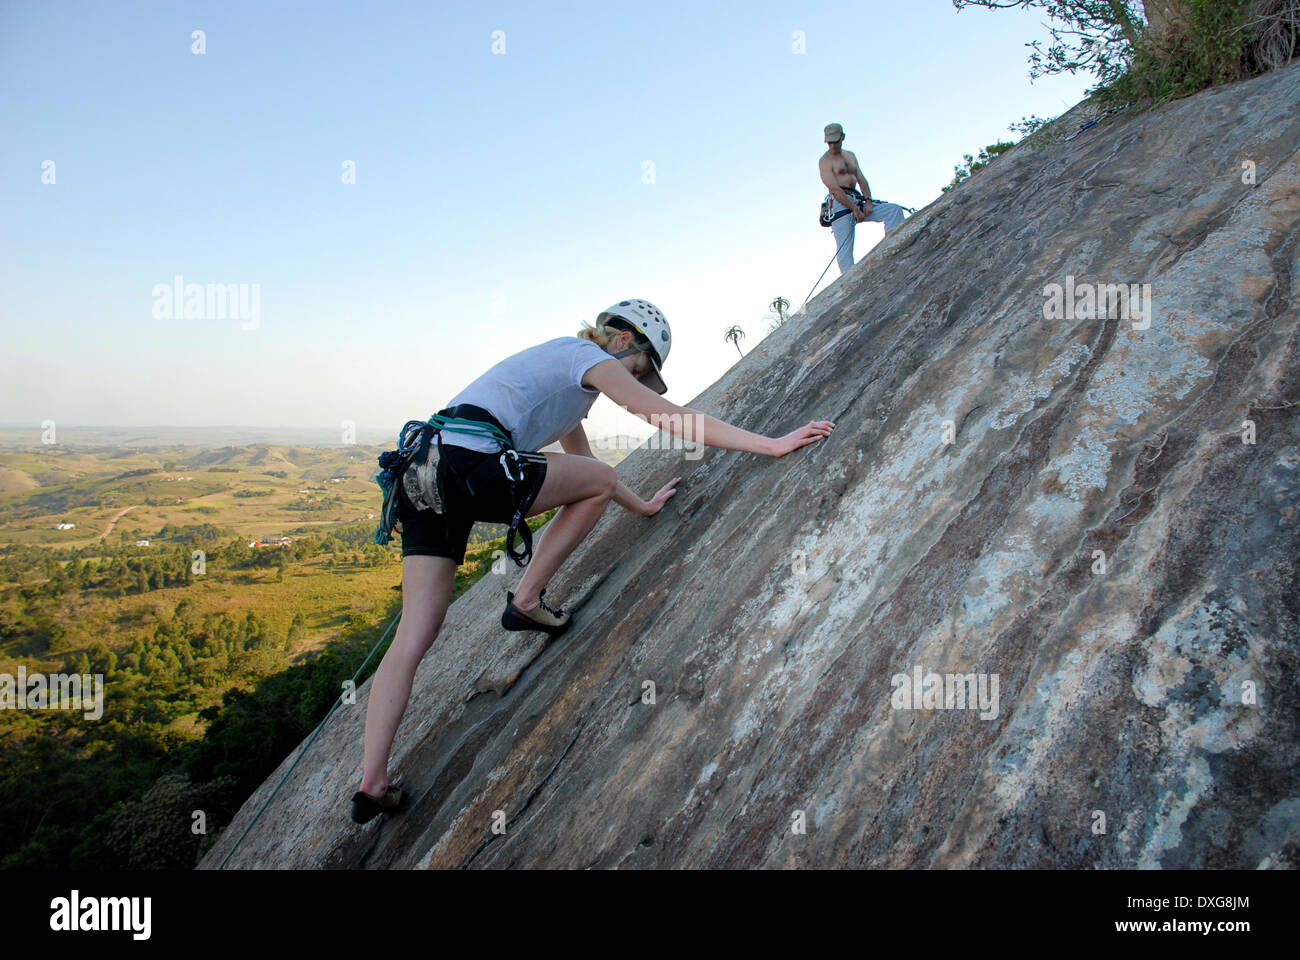 Climber relying on friction on granite slab, Ongoye Forest Reserve - Stock Image